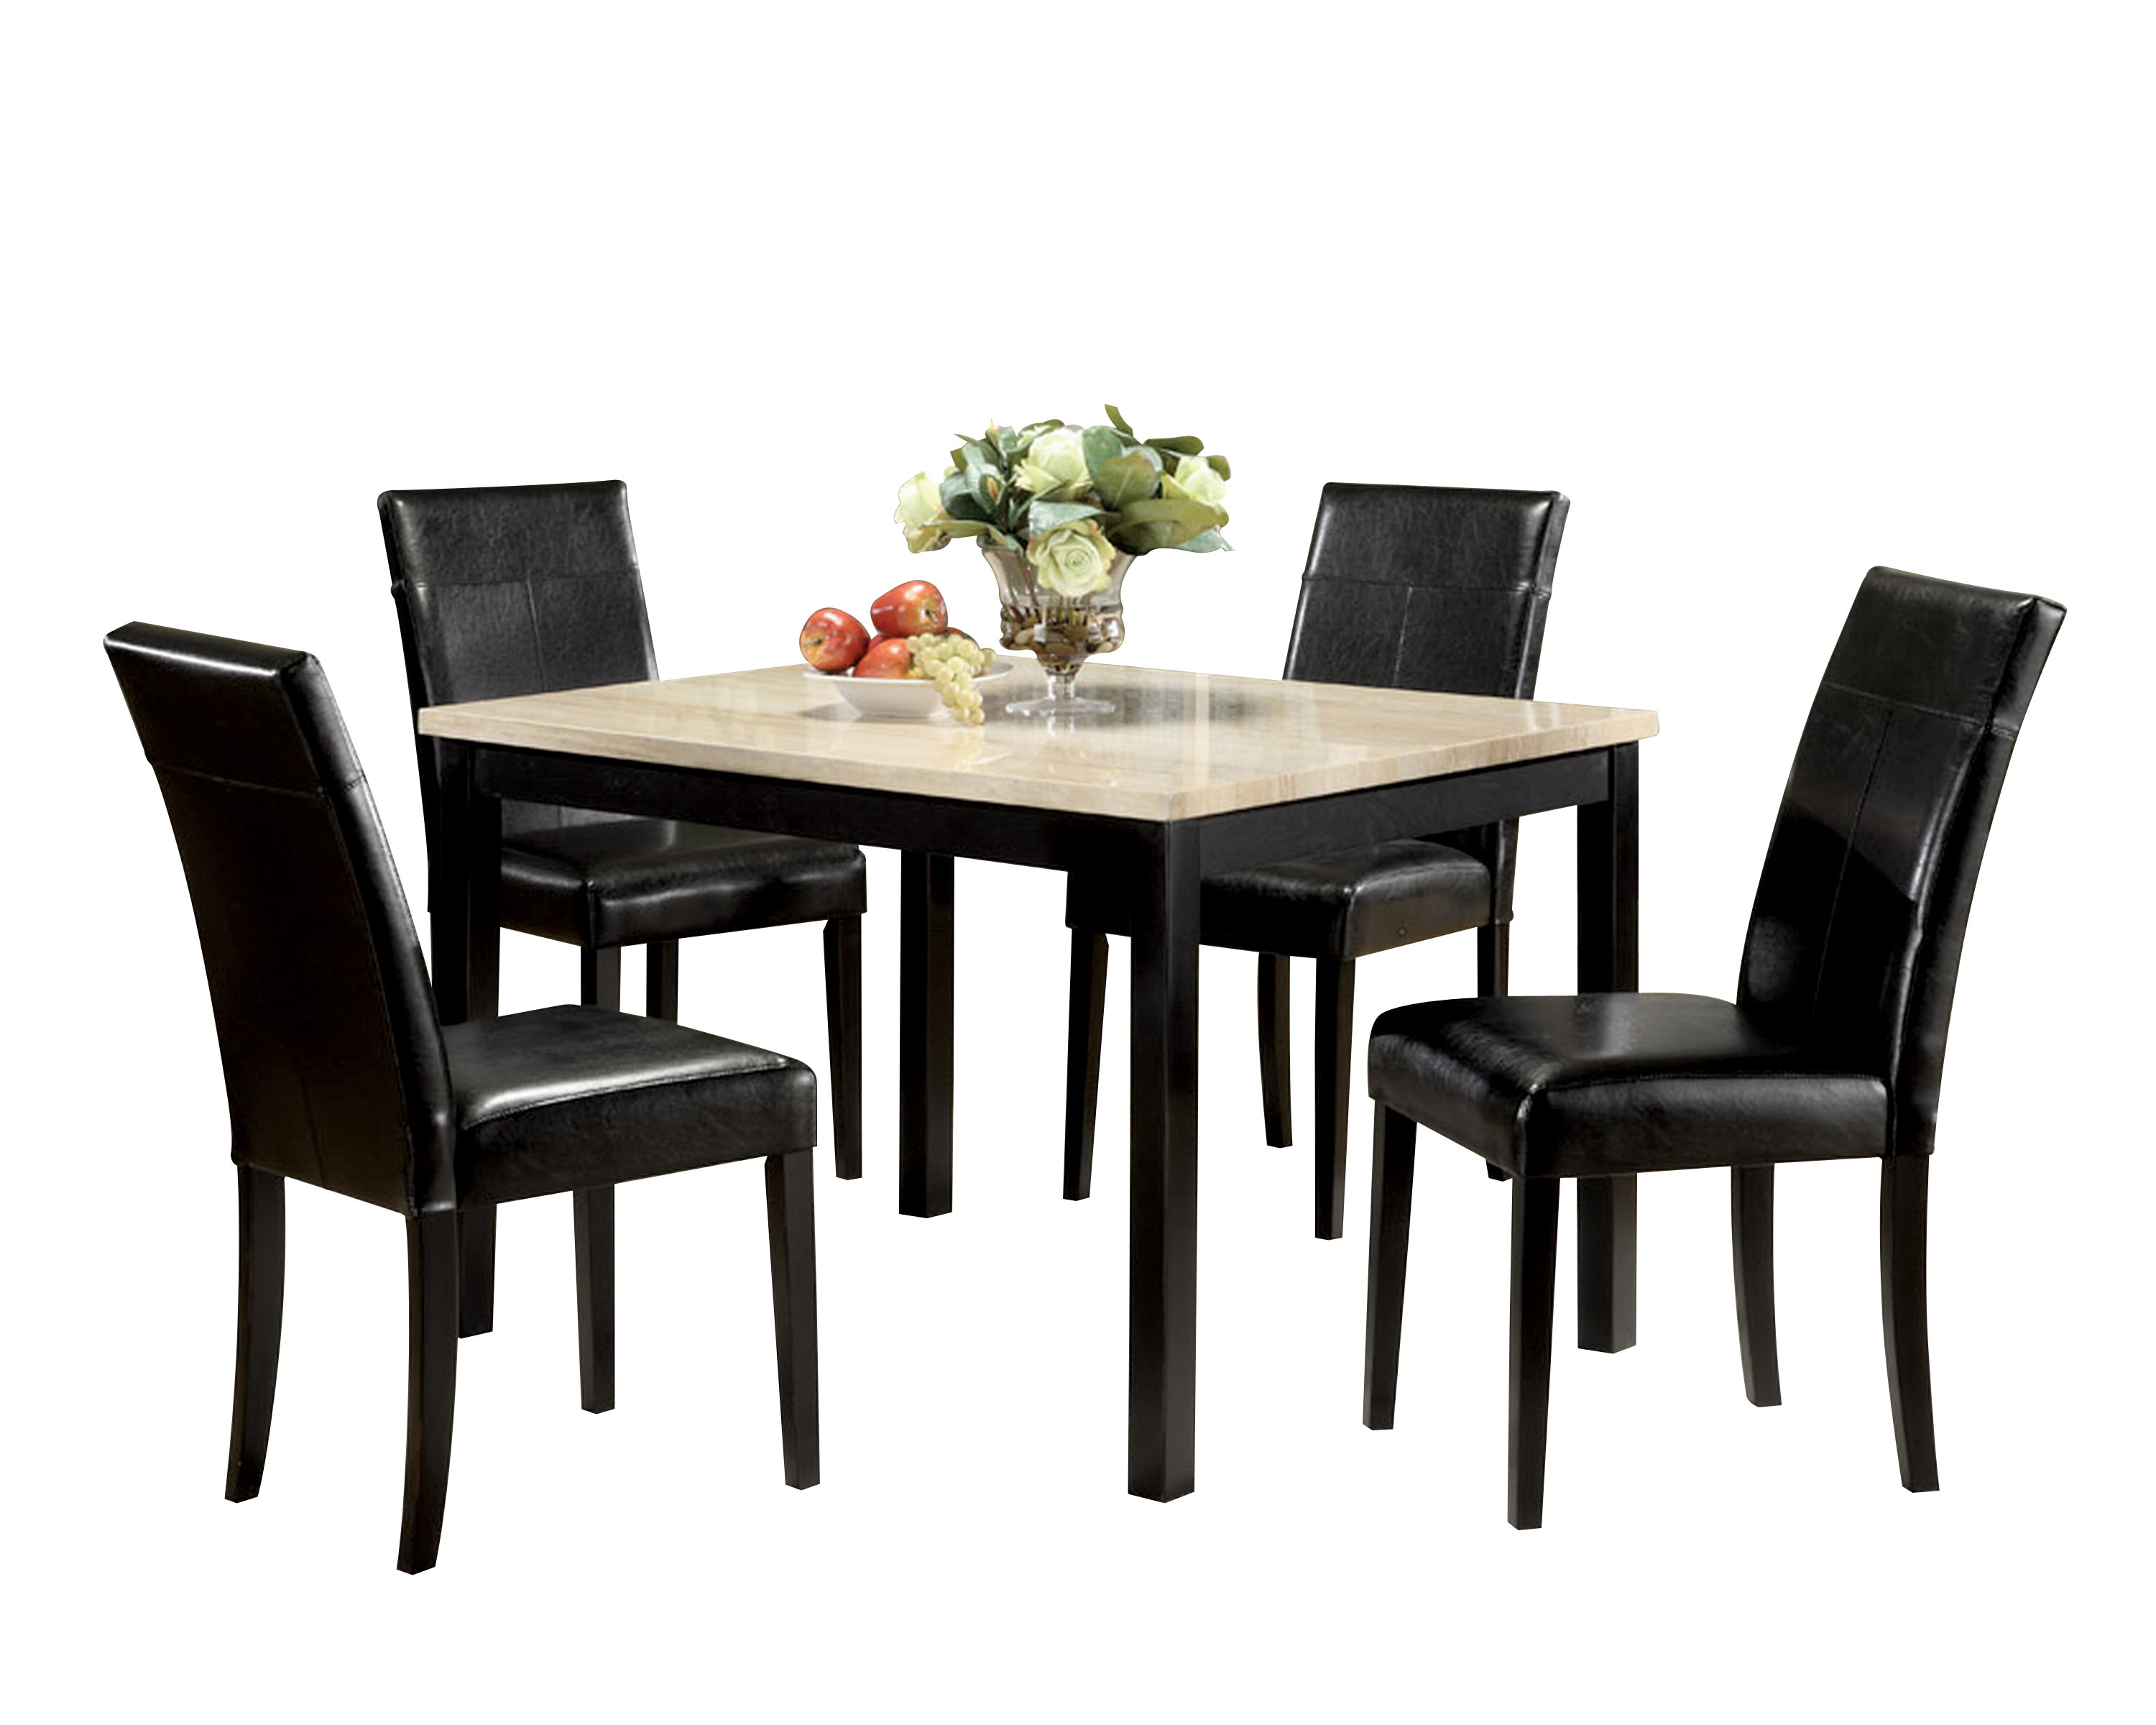 ACME Portland 5 Piece Pack Dining Set, Brown Faux Marble U0026 Cherry